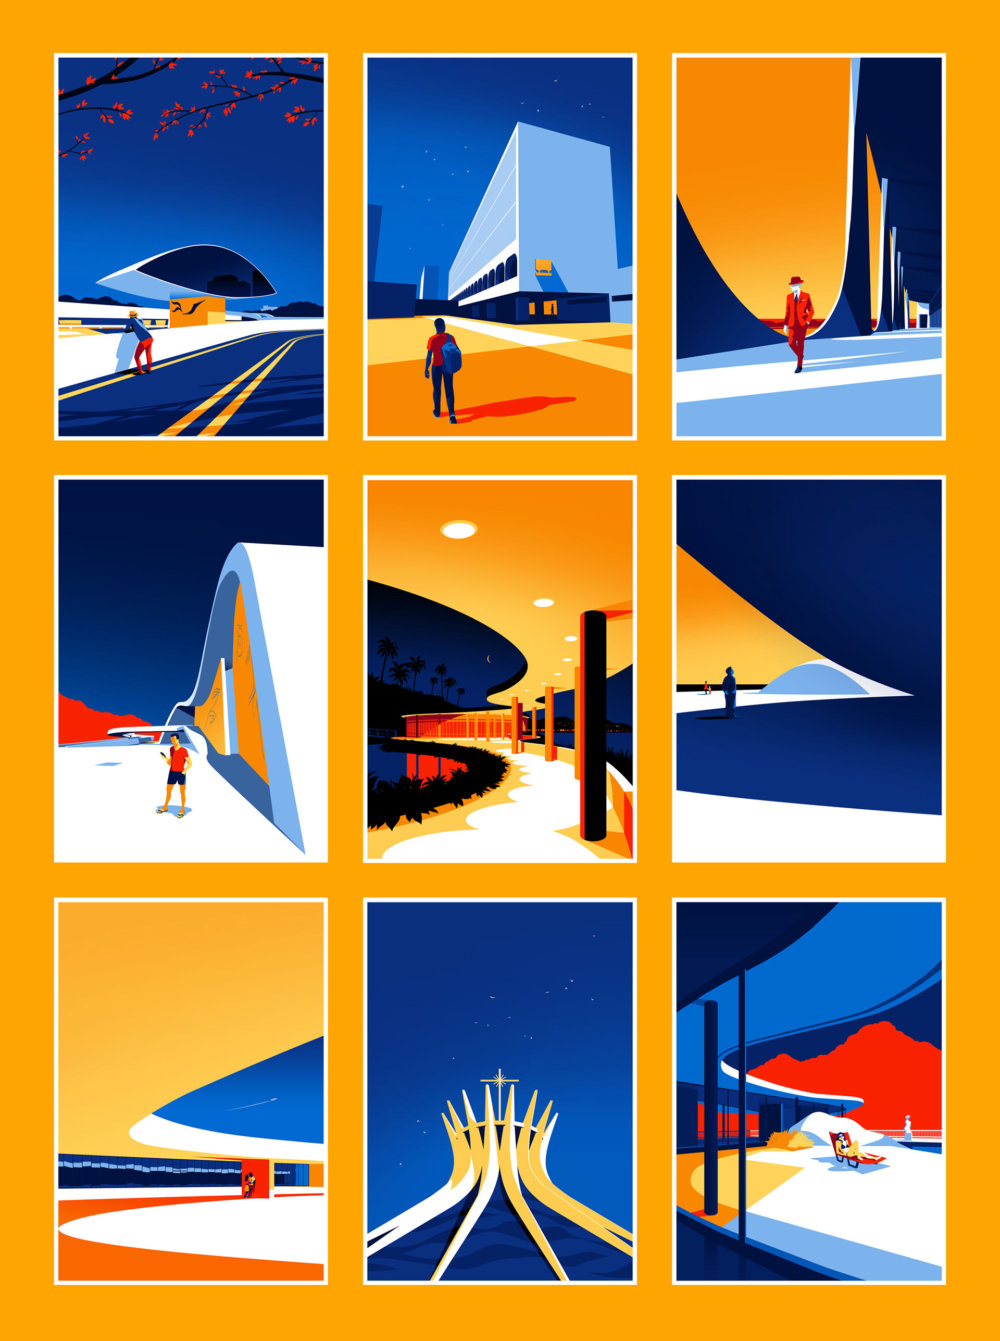 Utopia Architectural Illustration Series Featuring Oscar Niemeyers Design Lines By Levente Szabo 10